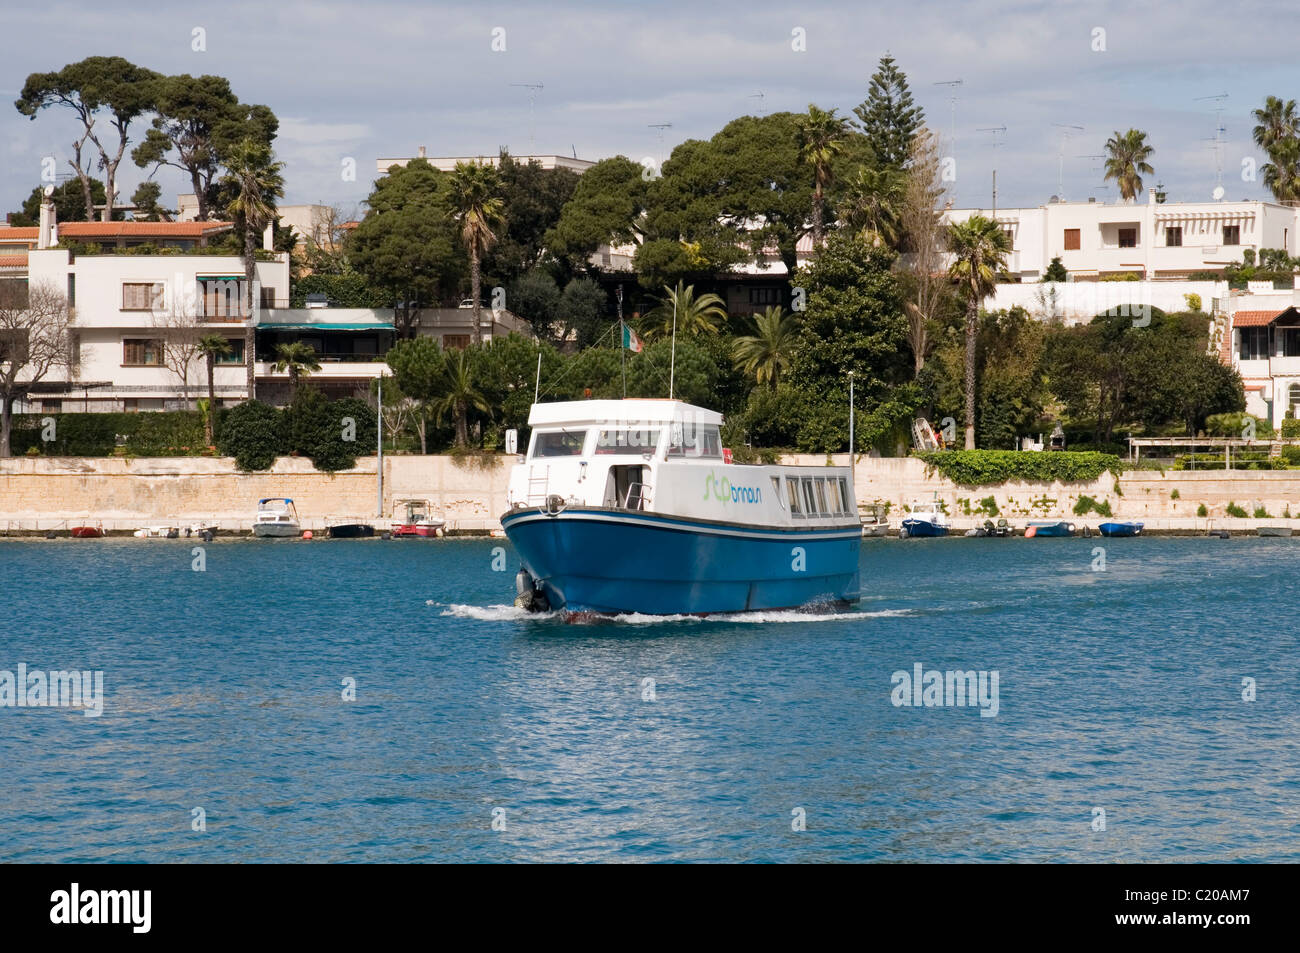 water bus taxi boat trip ride across the water brindisi harbour italy public transport ferry ferries passenger foot Stock Photo